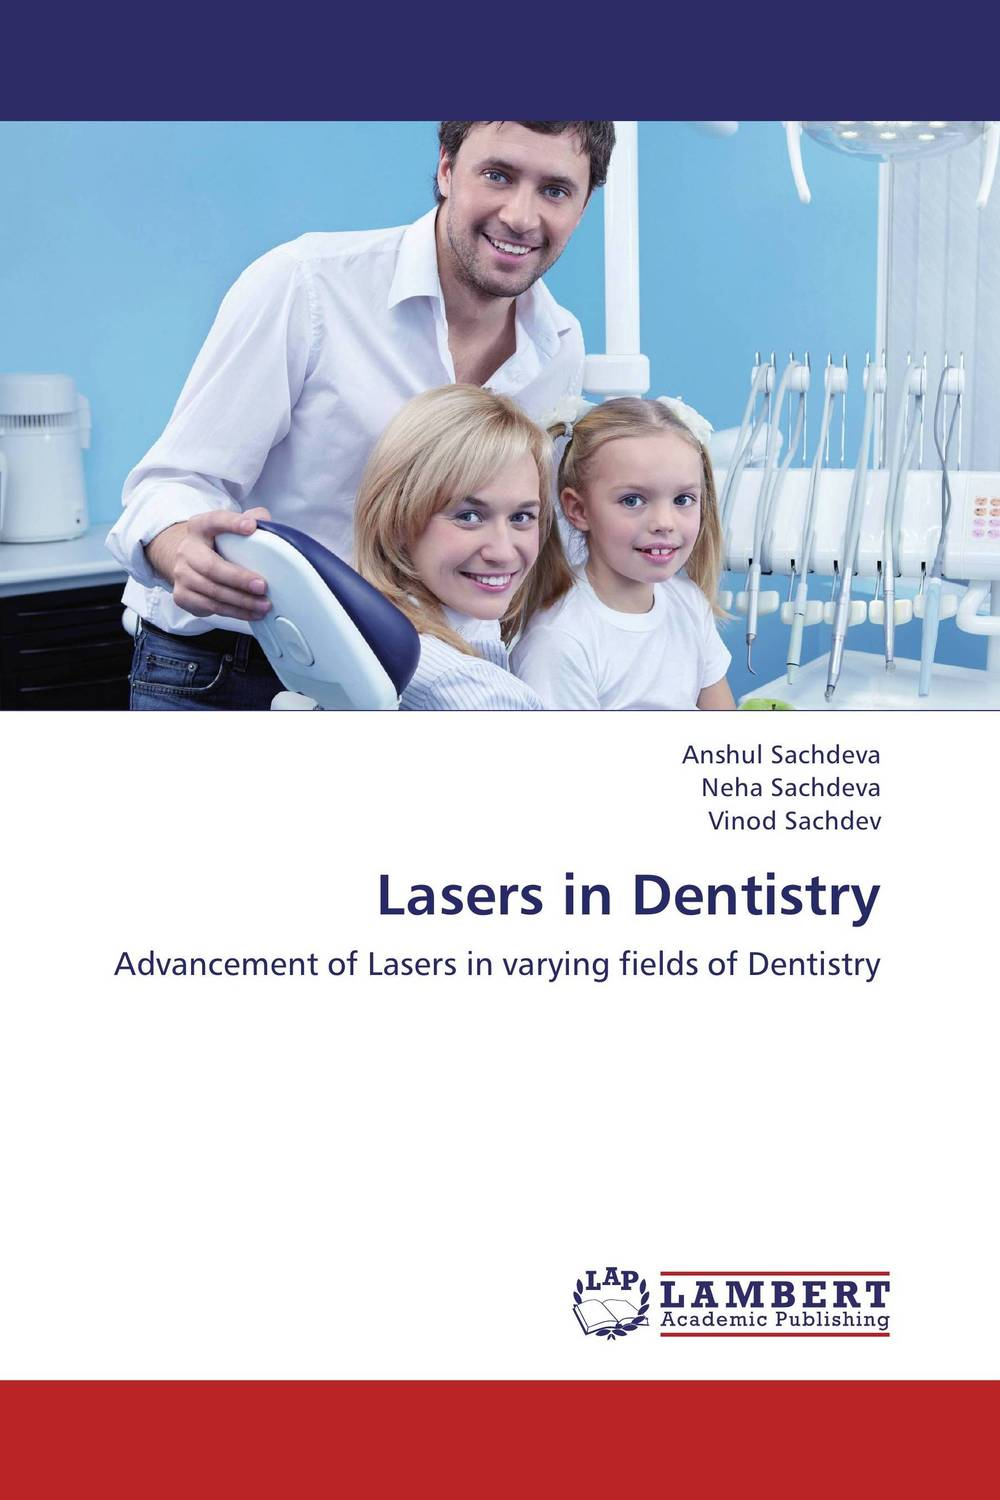 Lasers in Dentistry